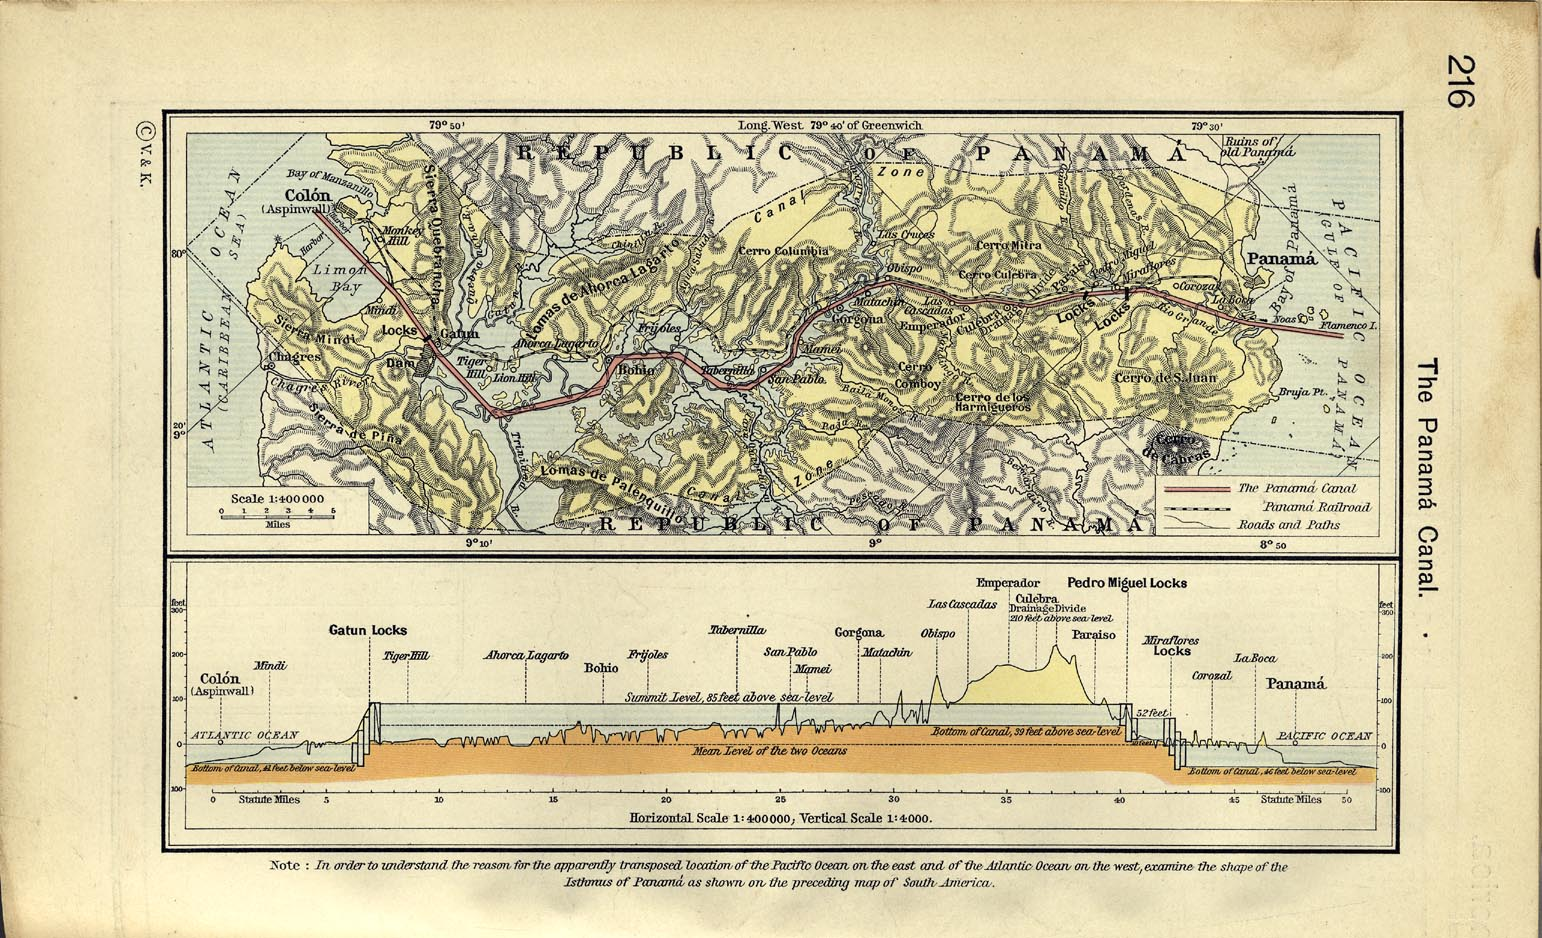 maps perry casta atilde plusmn eda map collection ut library online the canal historical